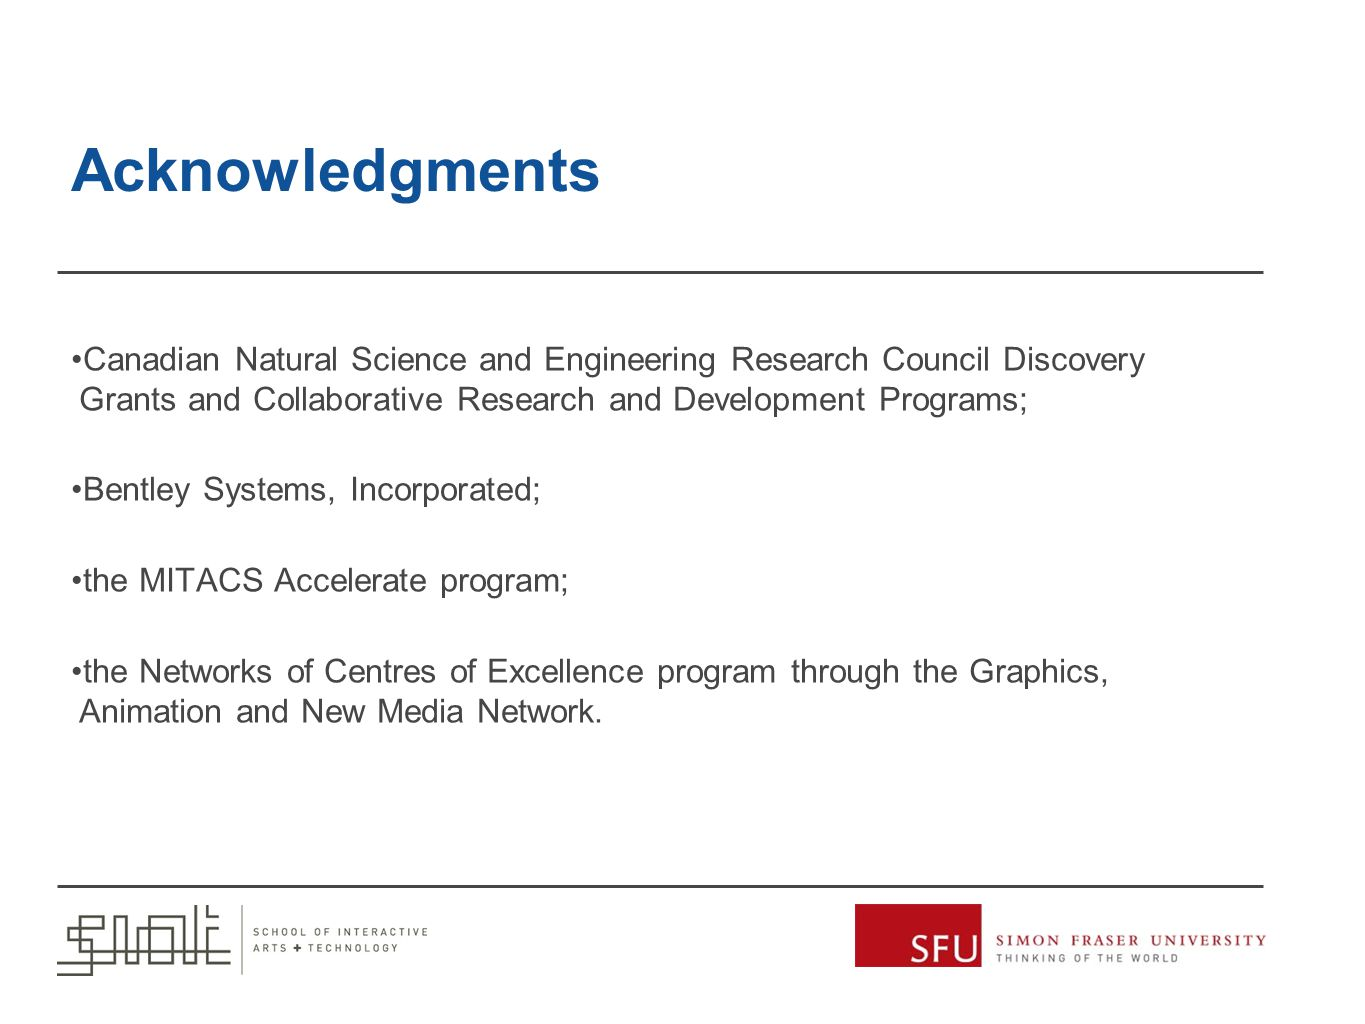 Acknowledgments Canadian Natural Science and Engineering Research Council Discovery Grants and Collaborative Research and Development Programs; Bentley Systems, Incorporated; the MITACS Accelerate program; the Networks of Centres of Excellence program through the Graphics, Animation and New Media Network.